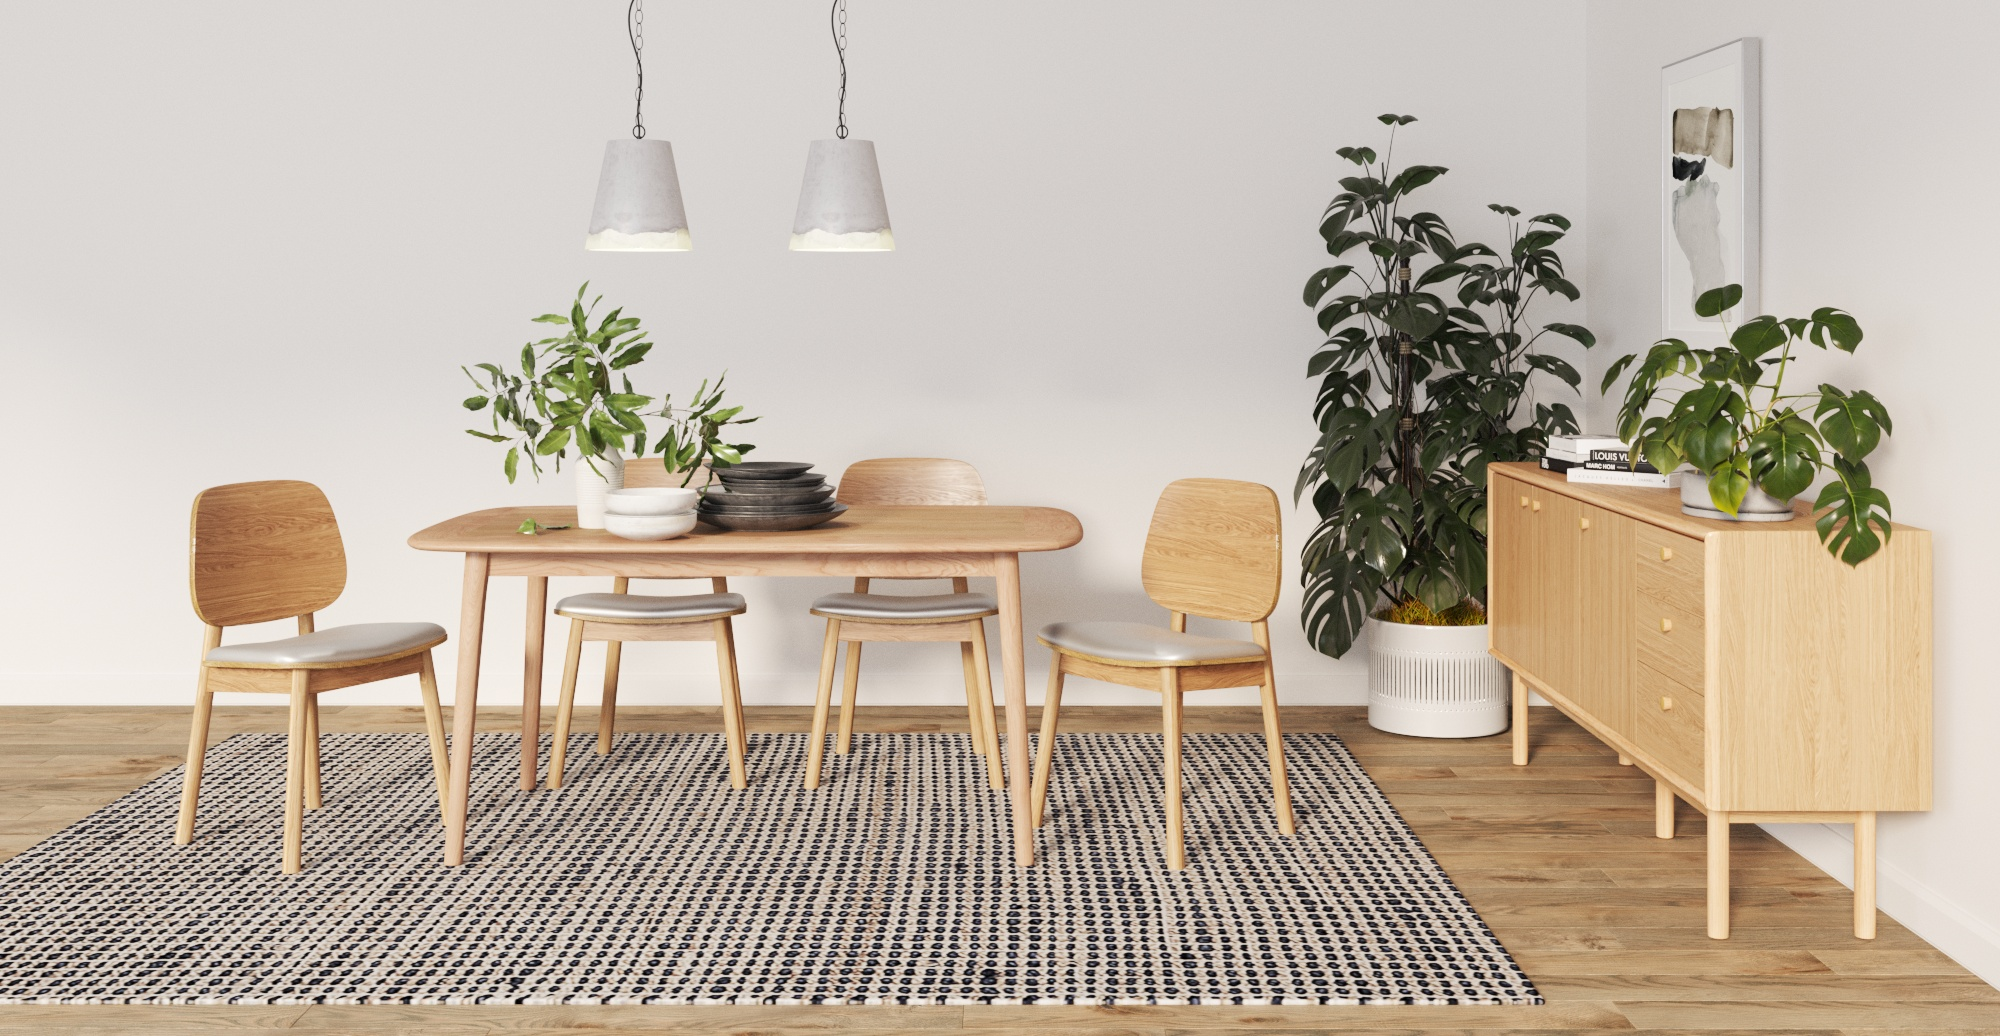 Brosa Kaneko Compact Dining Table 160cm styled in Scandinavian dining room